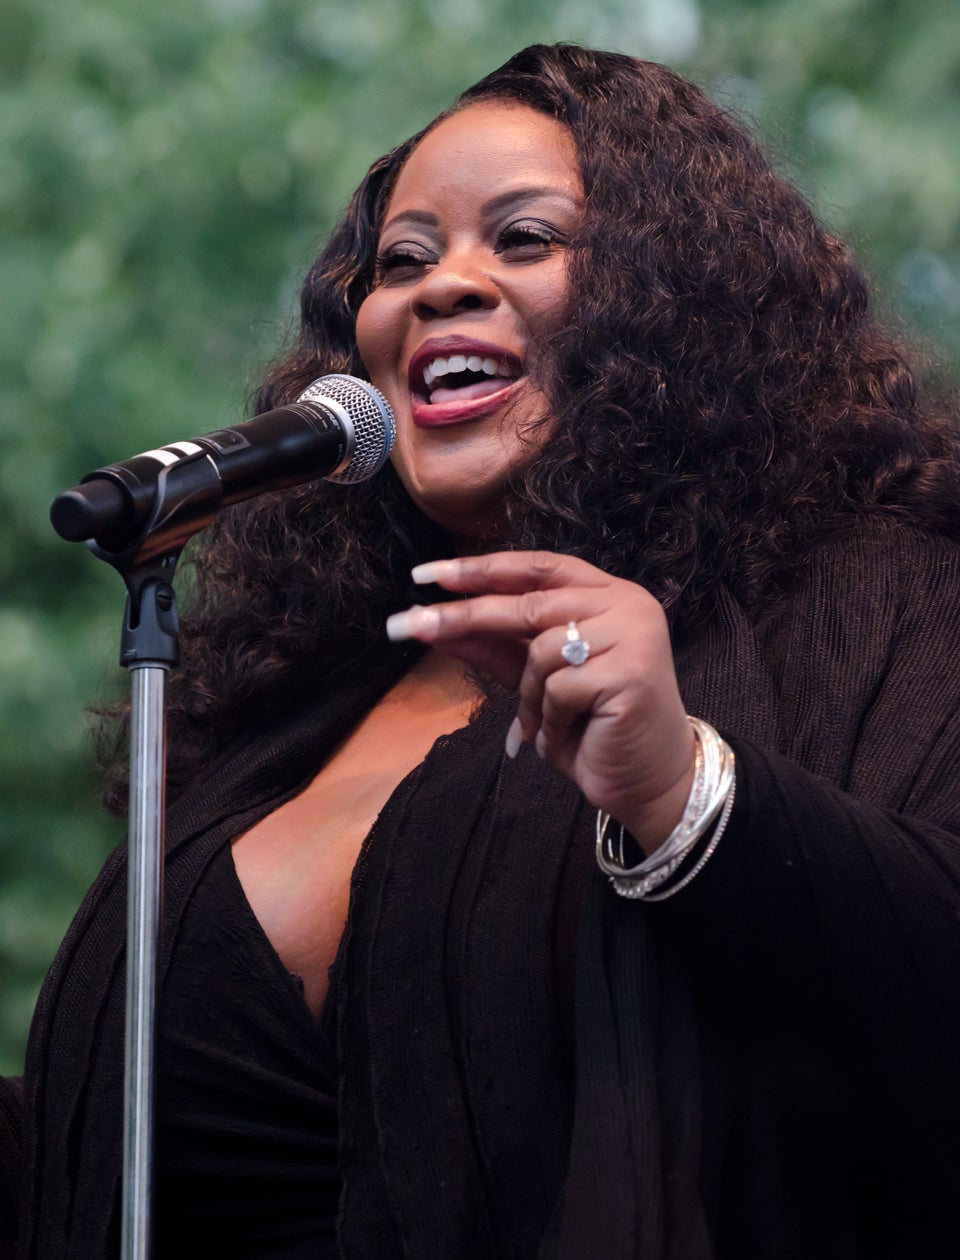 5 Questions with Maysa on 'Motion of Love' & Working with Stevie Wonder